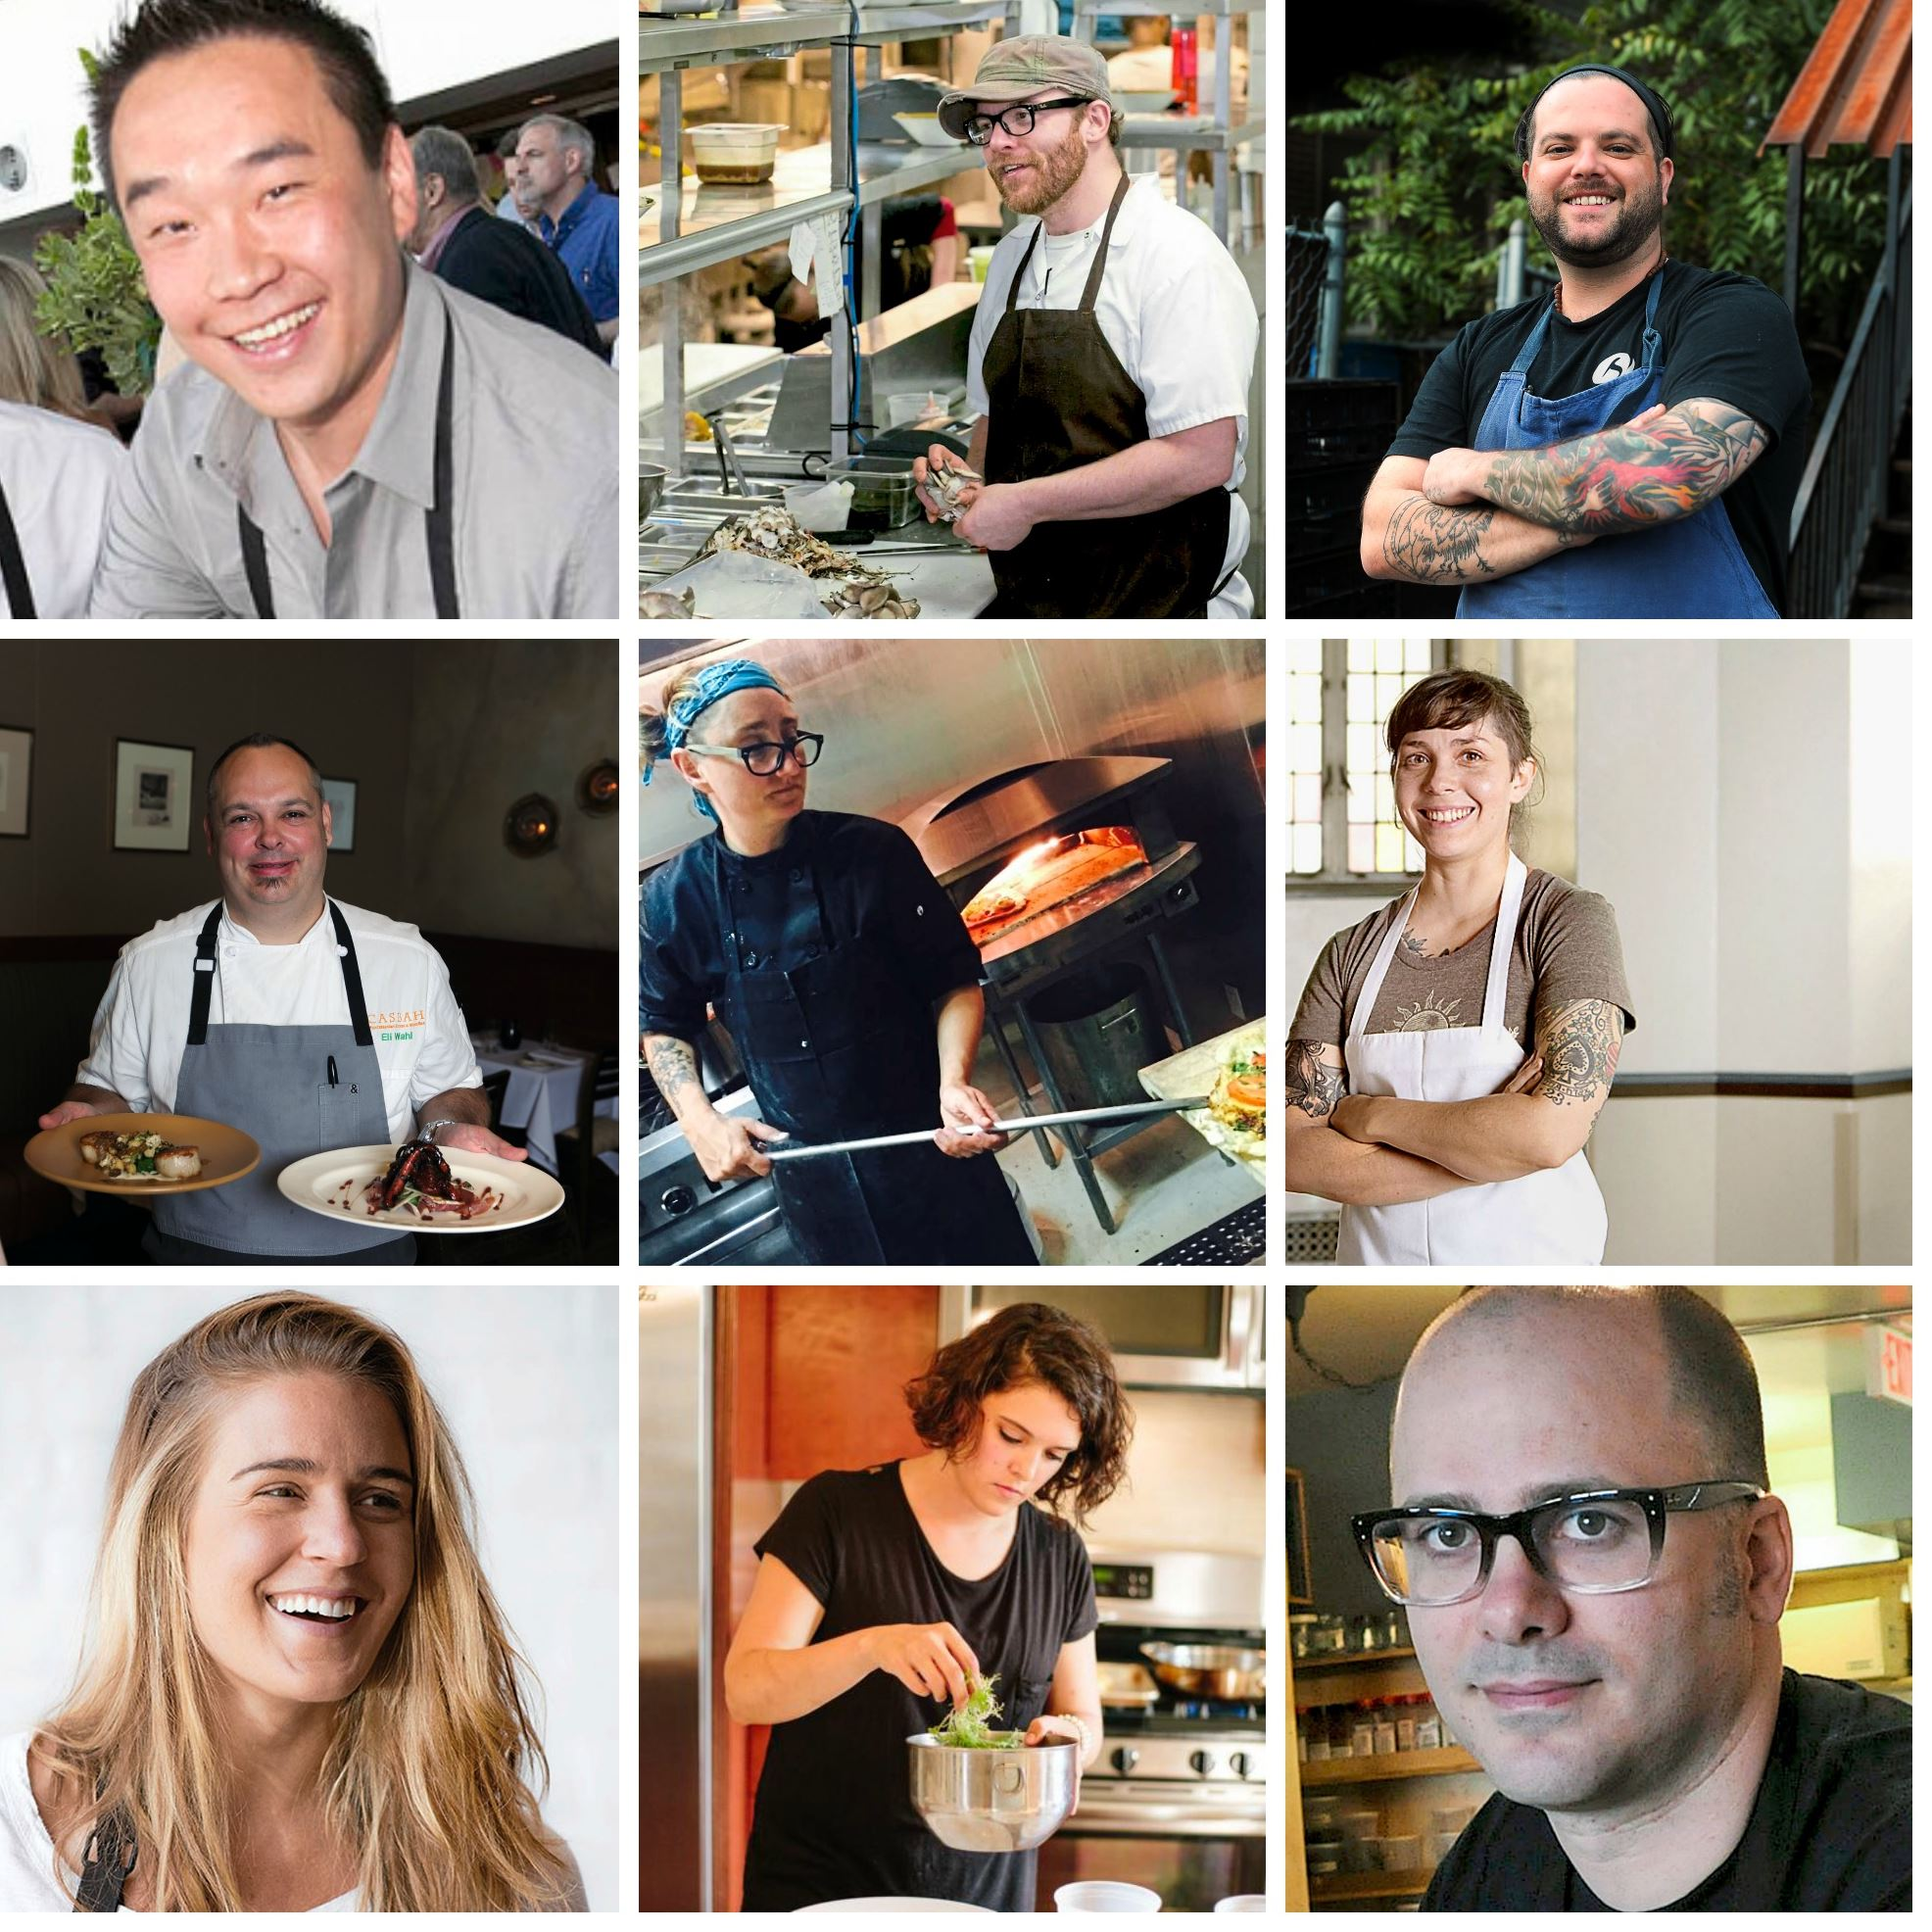 chef 2.jpg Left to right, top to bottom: Brian Pekarcik, Spoon; Curtis Gamble, Station; Dustin Gardner, Casbah Eli Wahl, Eleven; Kate Romane, Black Radish Kitchen; Bethany Zozula, The Whitfield Jessica Lewis, Or, The Whale, Merchant Oyster Co.; Kendyl Ryan, Duncan St Dinners, Justin Severino, Cure ad Morcilla